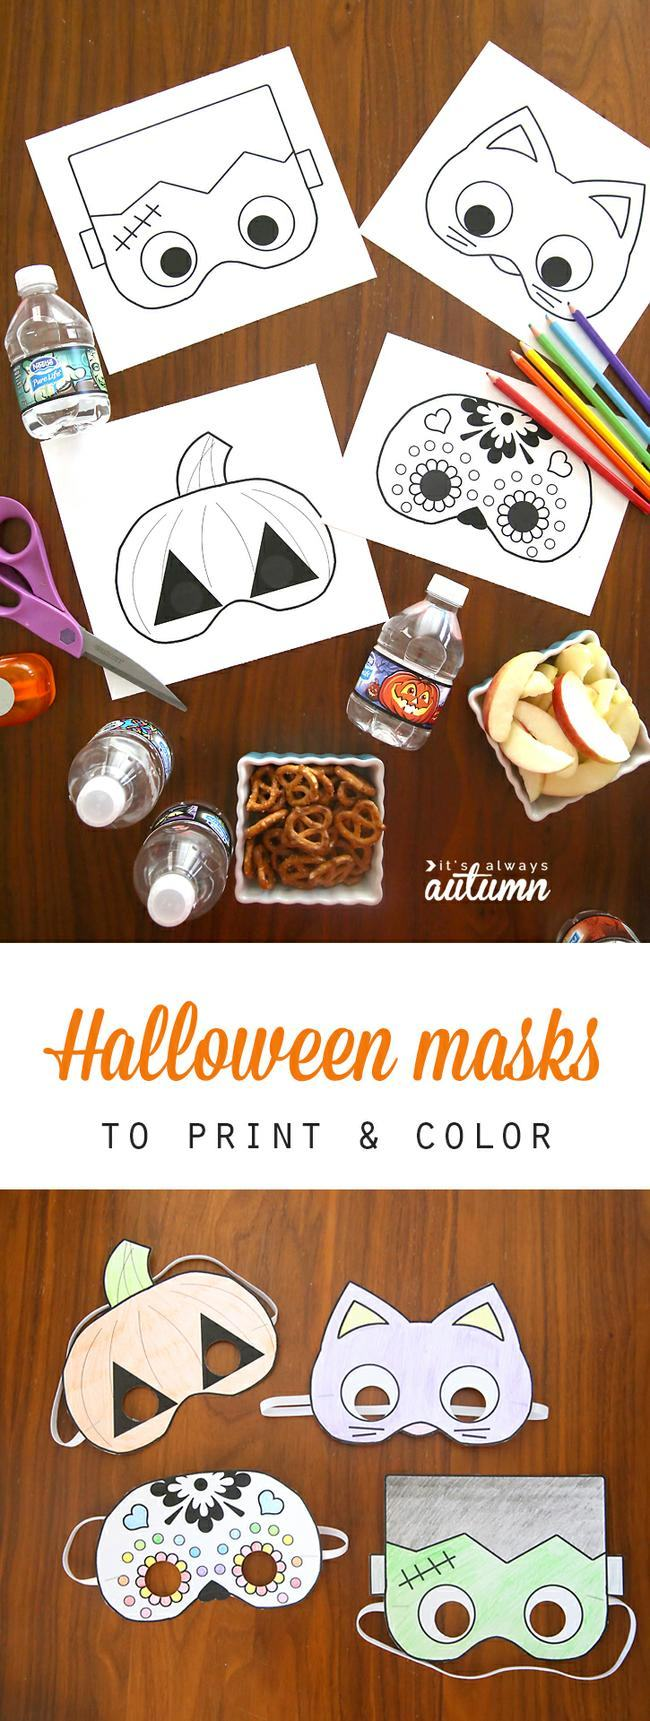 printable-halloween-mask-kids-easy-cheap-class-party-activity-7-jpg